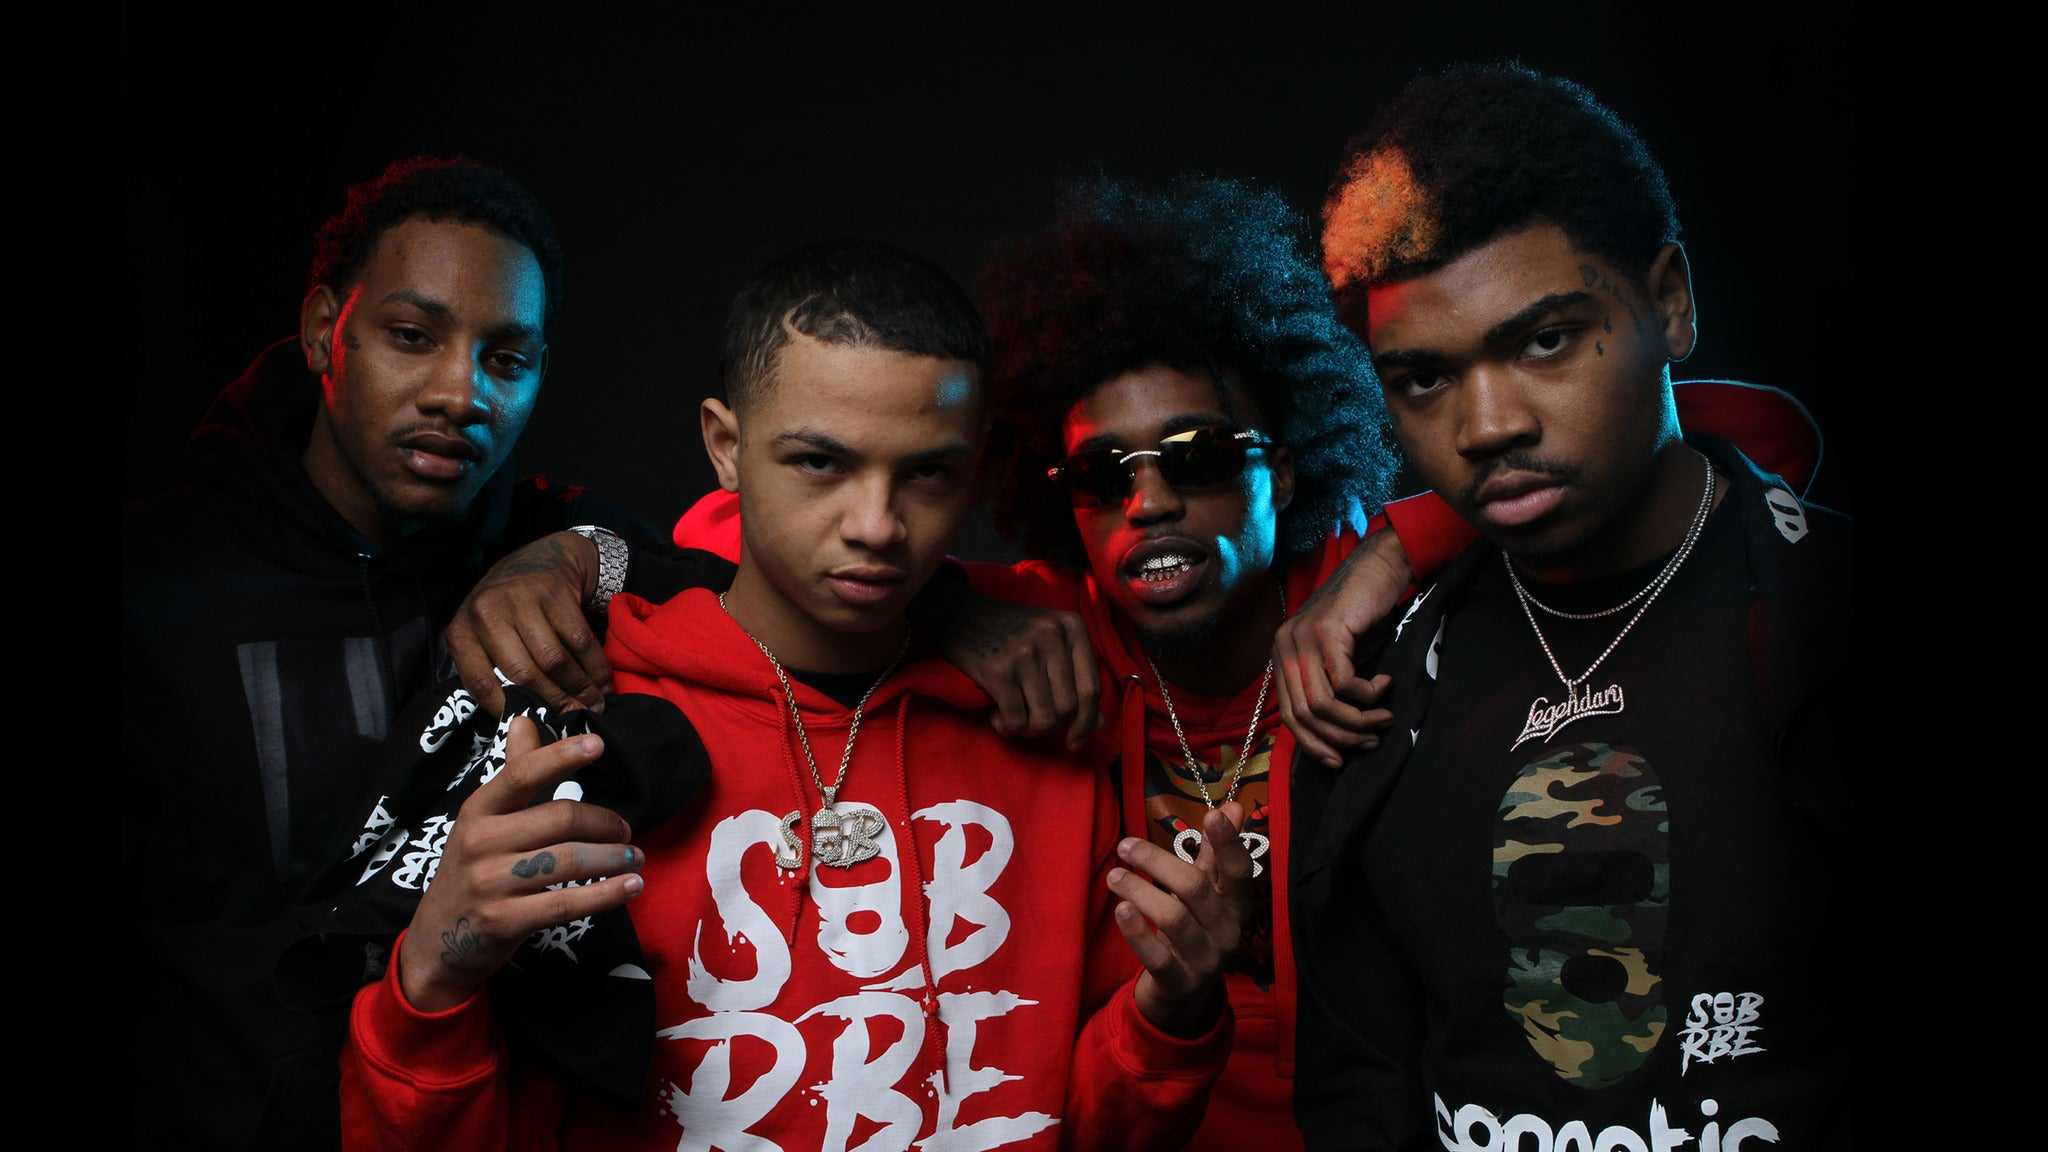 SOB X RBE at Knitting Factory Concert House - Boise